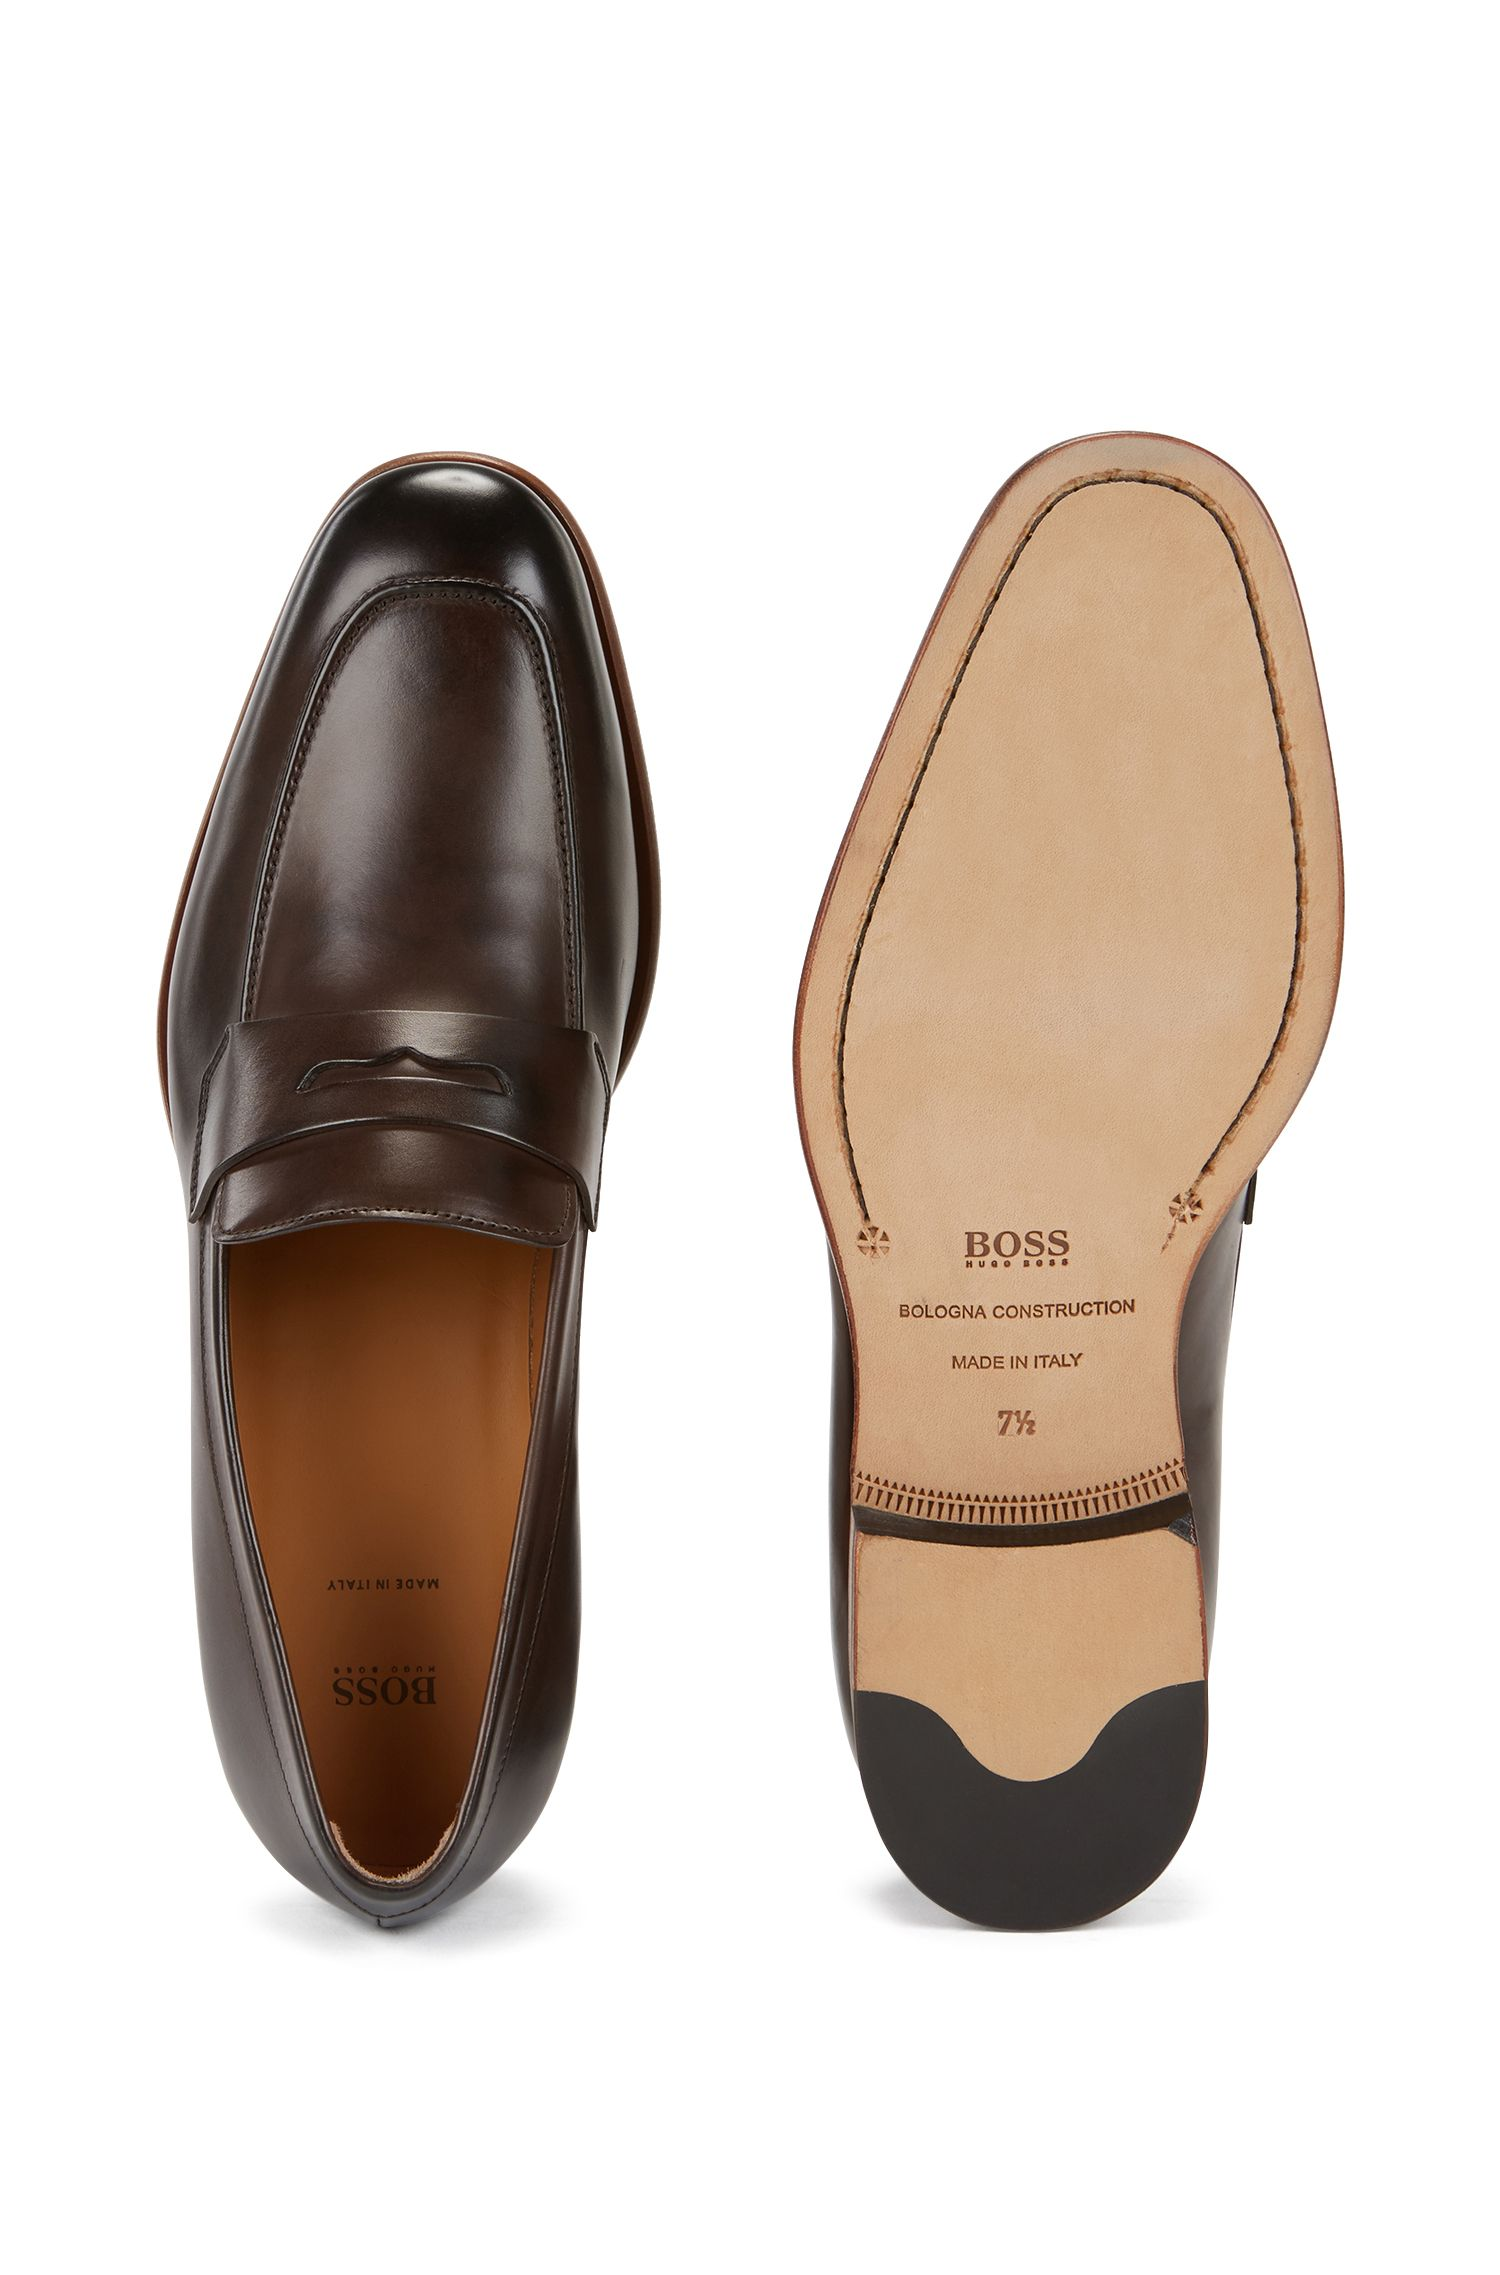 Penny loafers in burnished leather